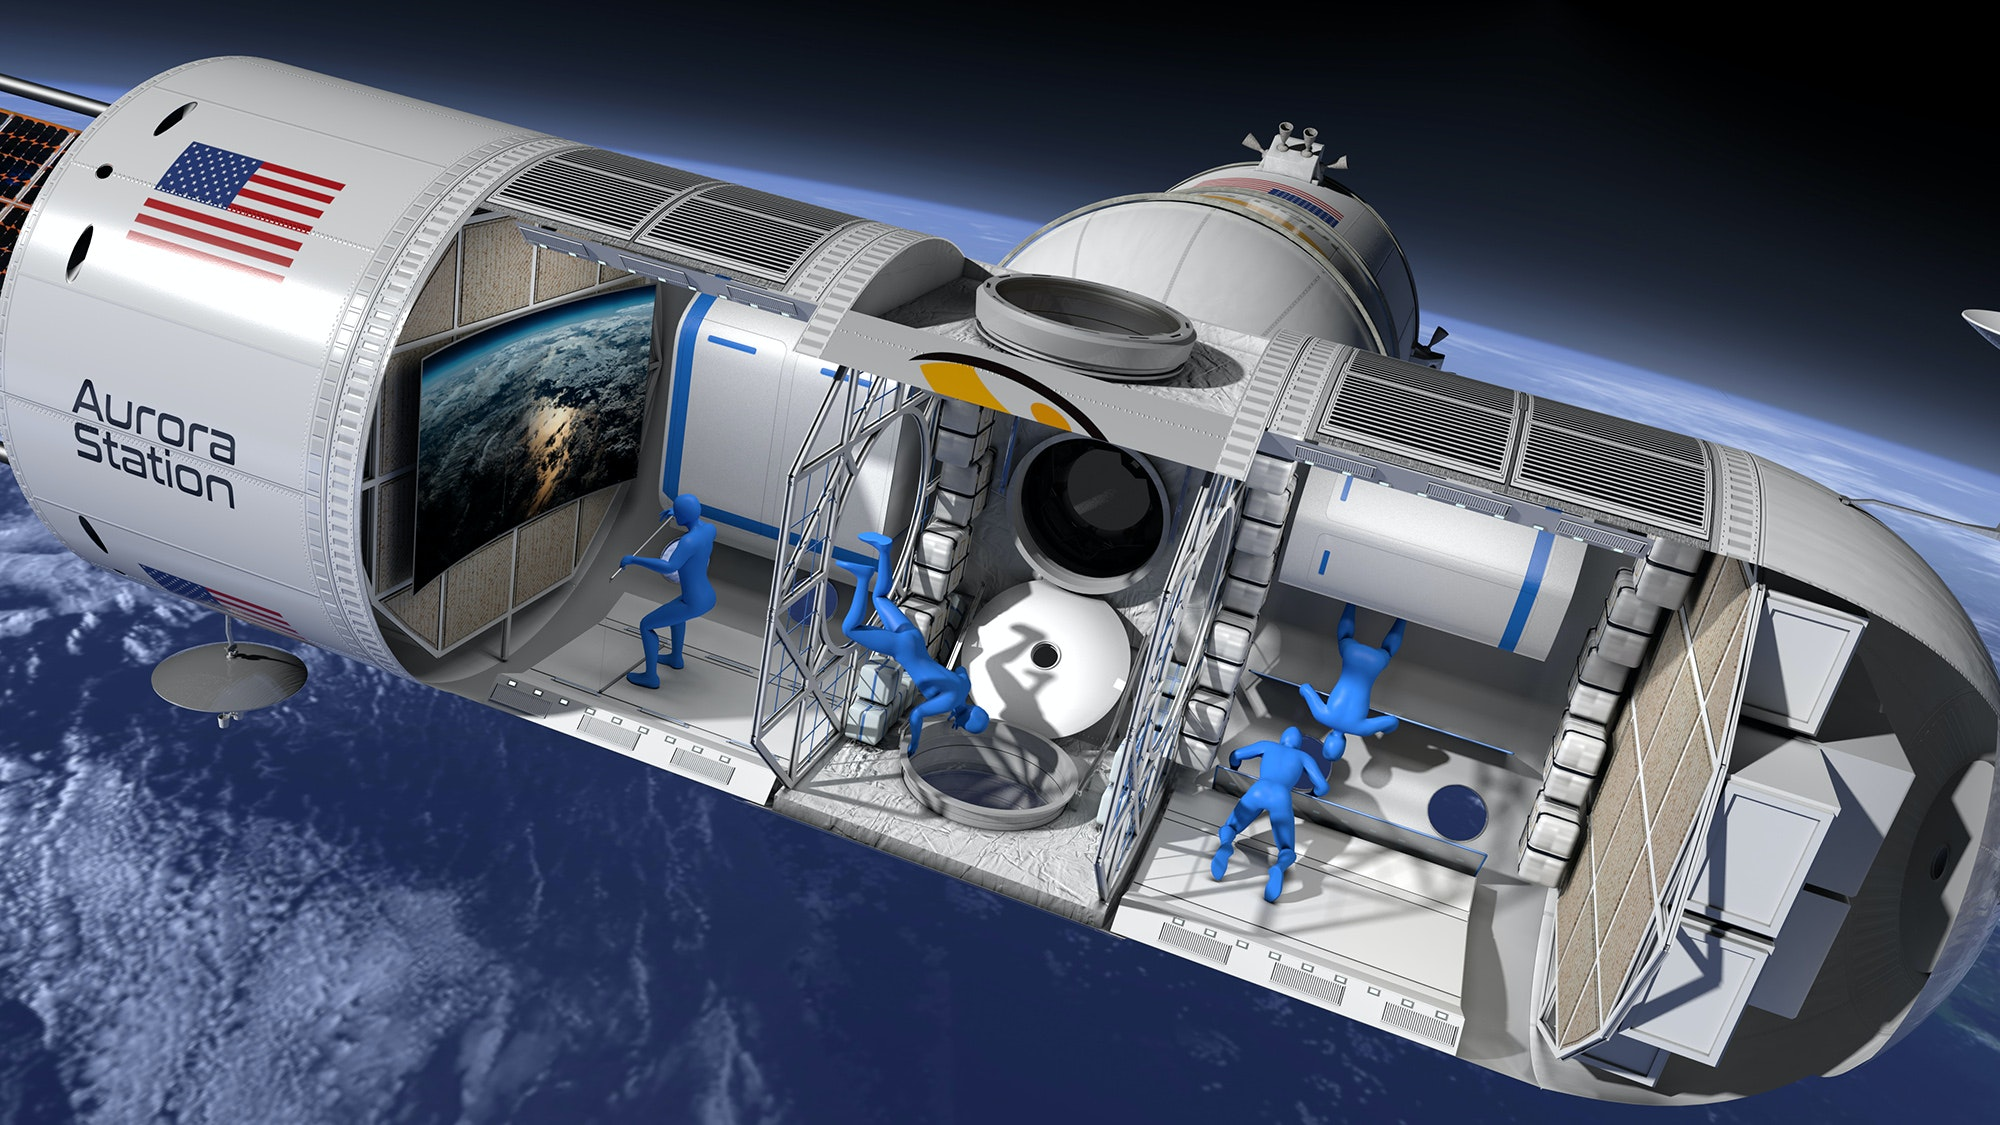 While in space, Aurora Station will soar 200 miles above the planet's surface in low Earth orbit.